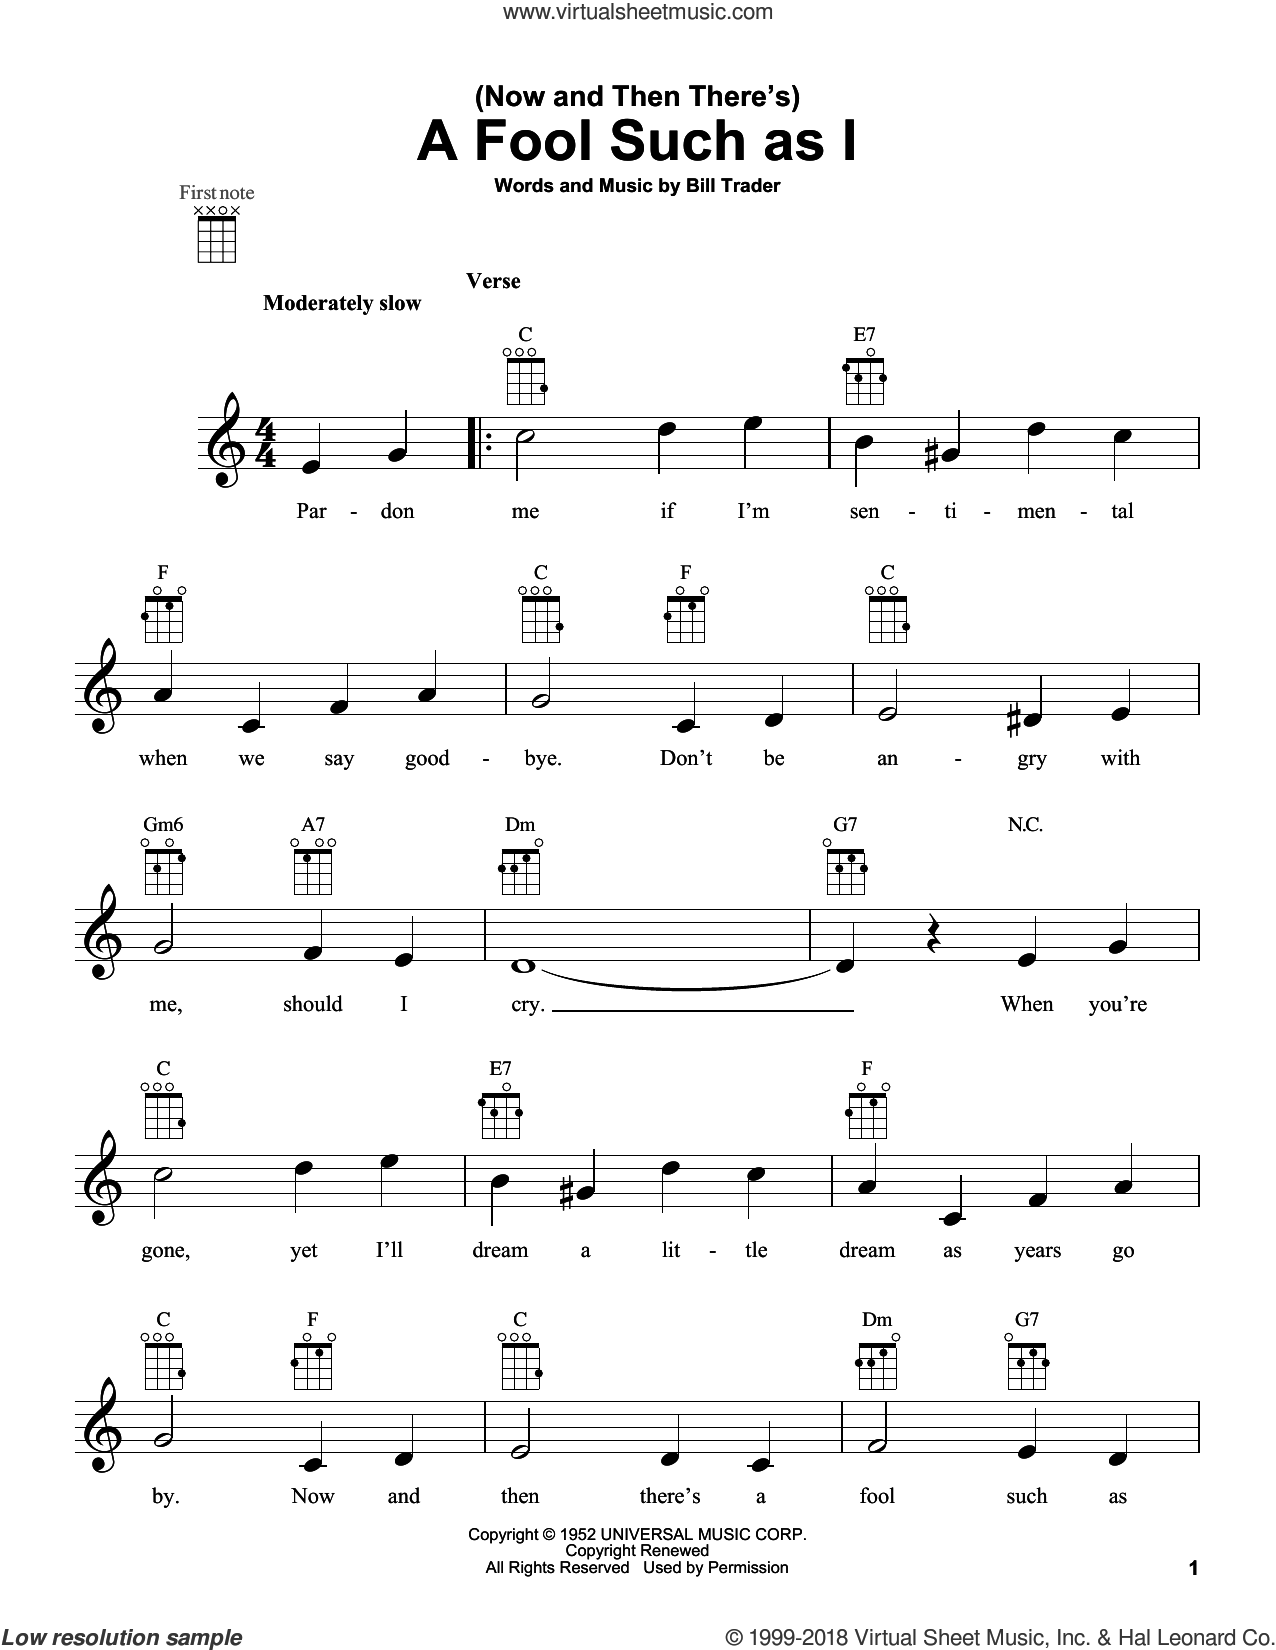 (Now And Then There's) A Fool Such As I sheet music for ukulele by Bob Dylan, Elvis Presley and Hank Snow, intermediate. Score Image Preview.